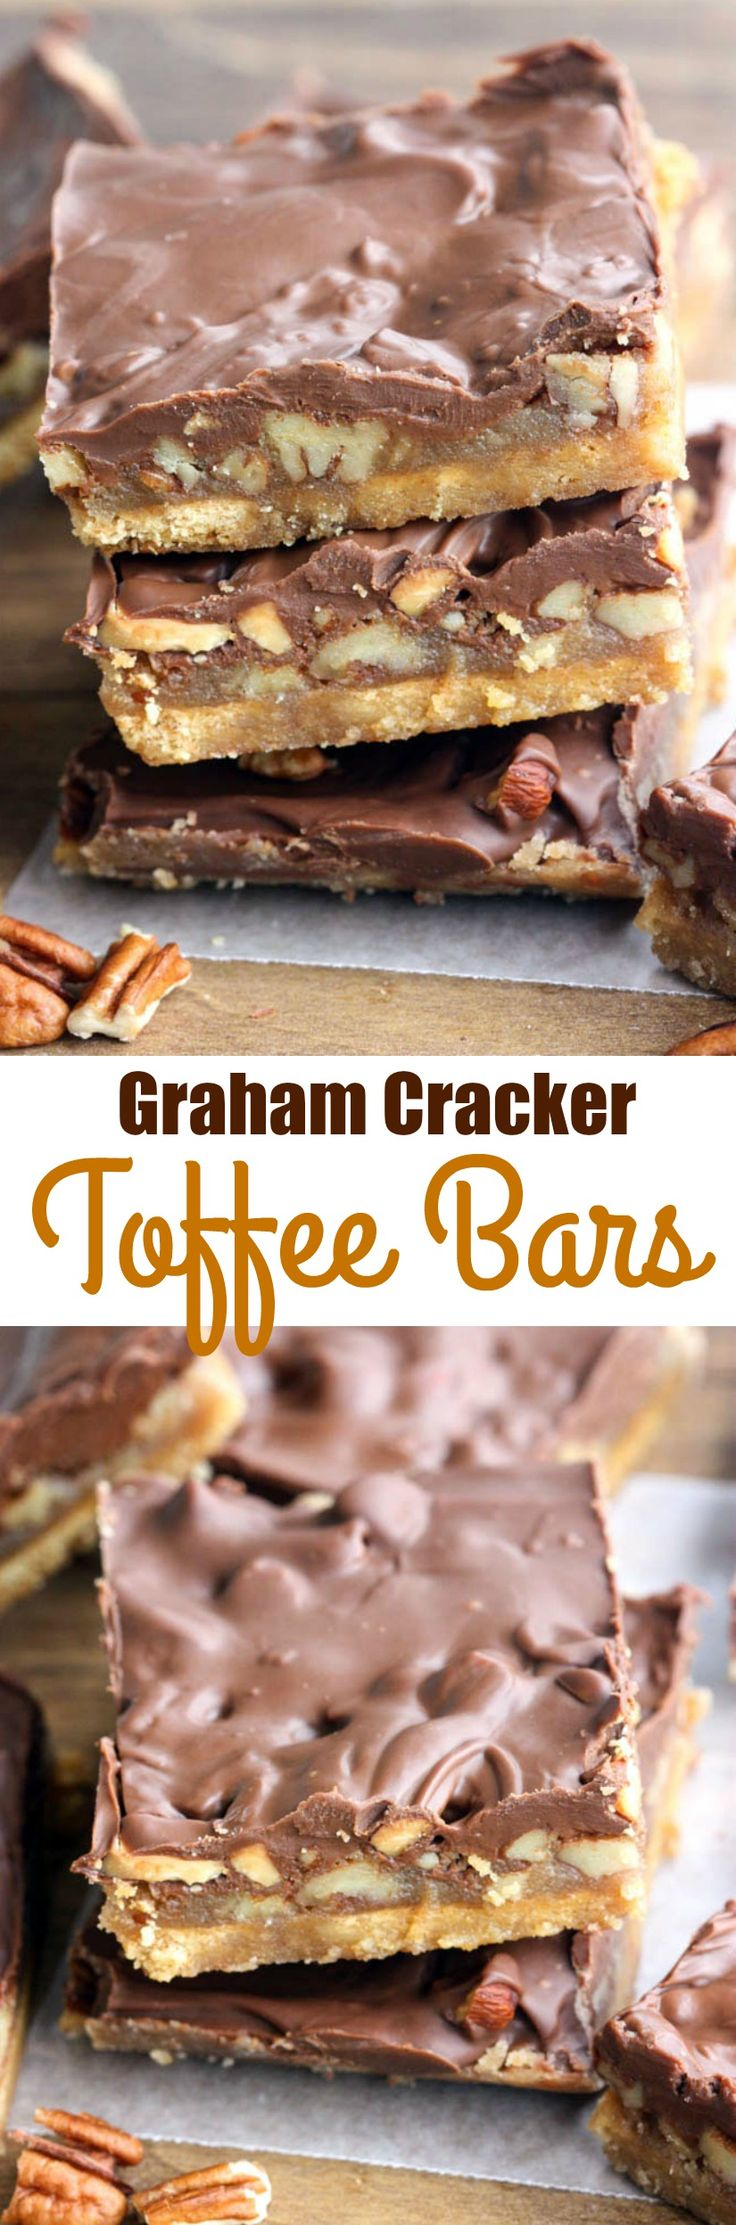 Graham Cracker Toffee Bars – only 5 ingredients to make the tastiest, easiest toff